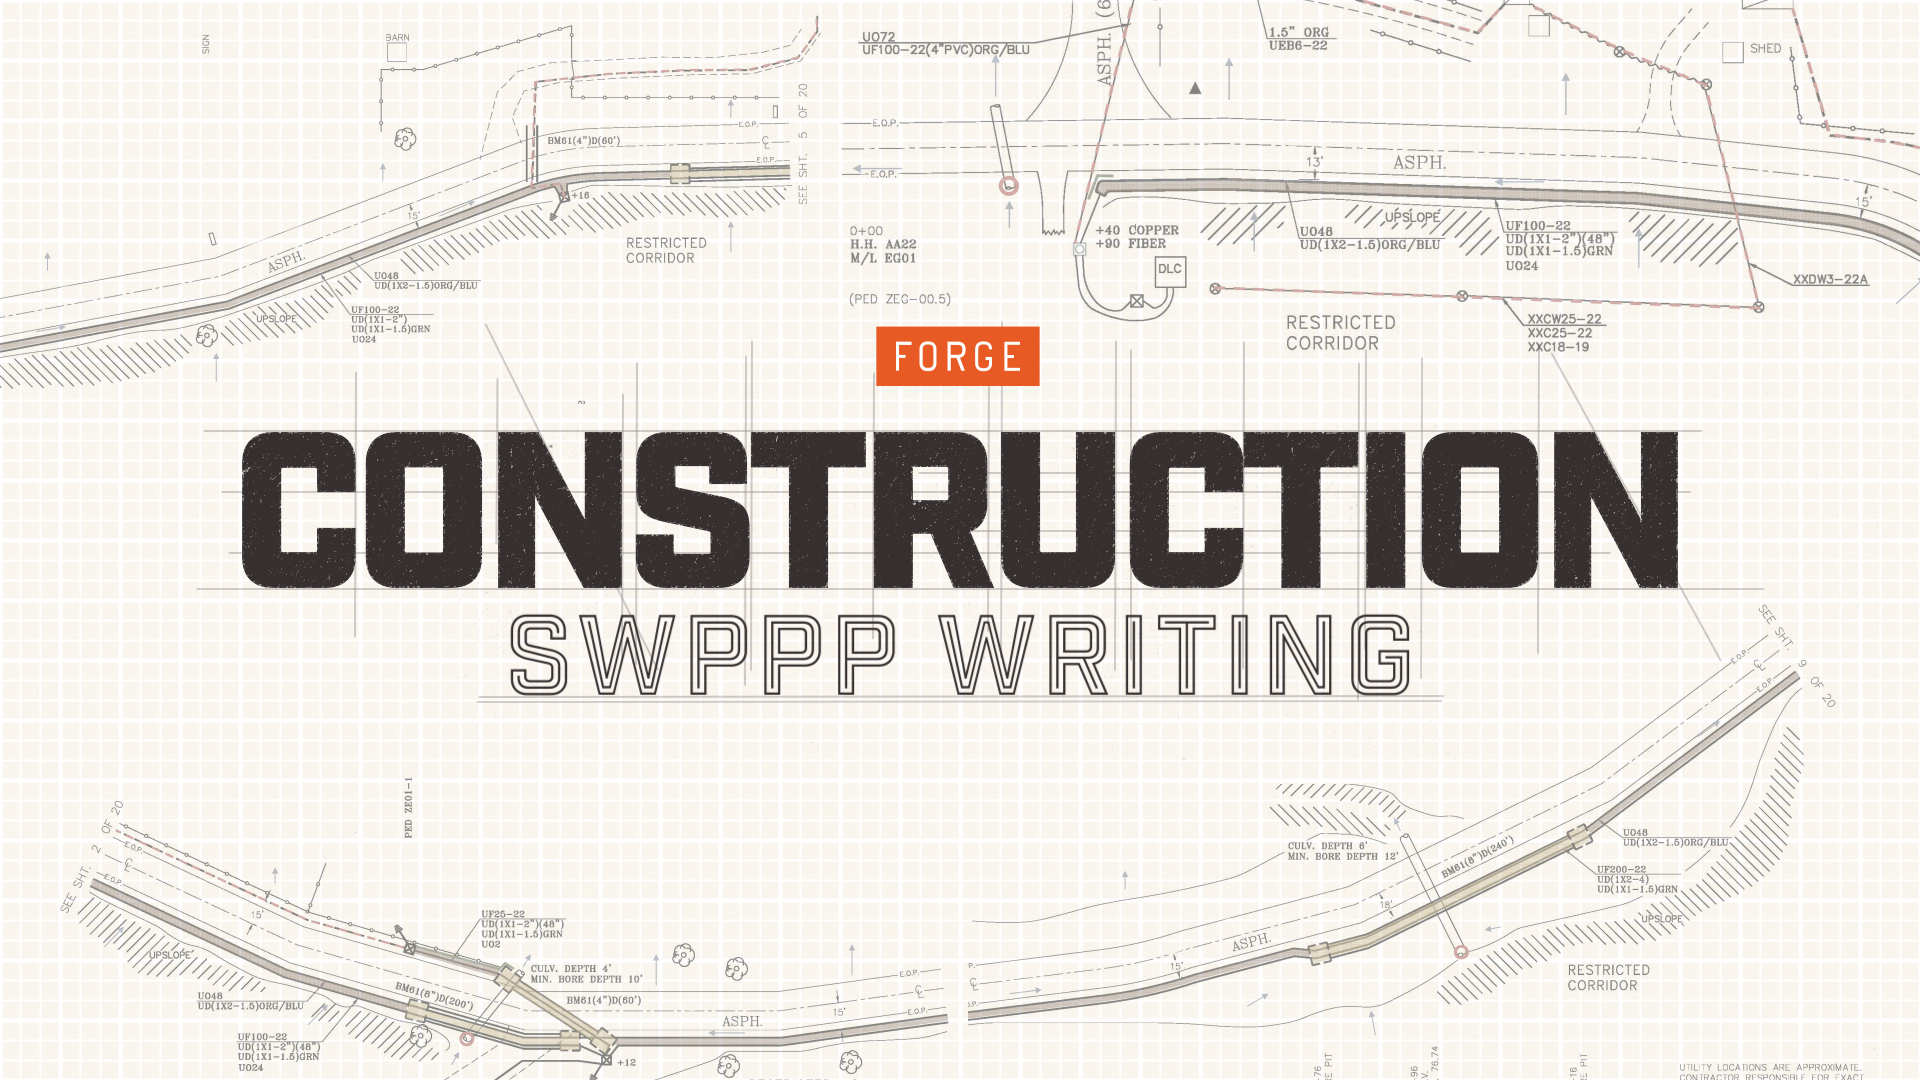 Construction SWPPP Writing